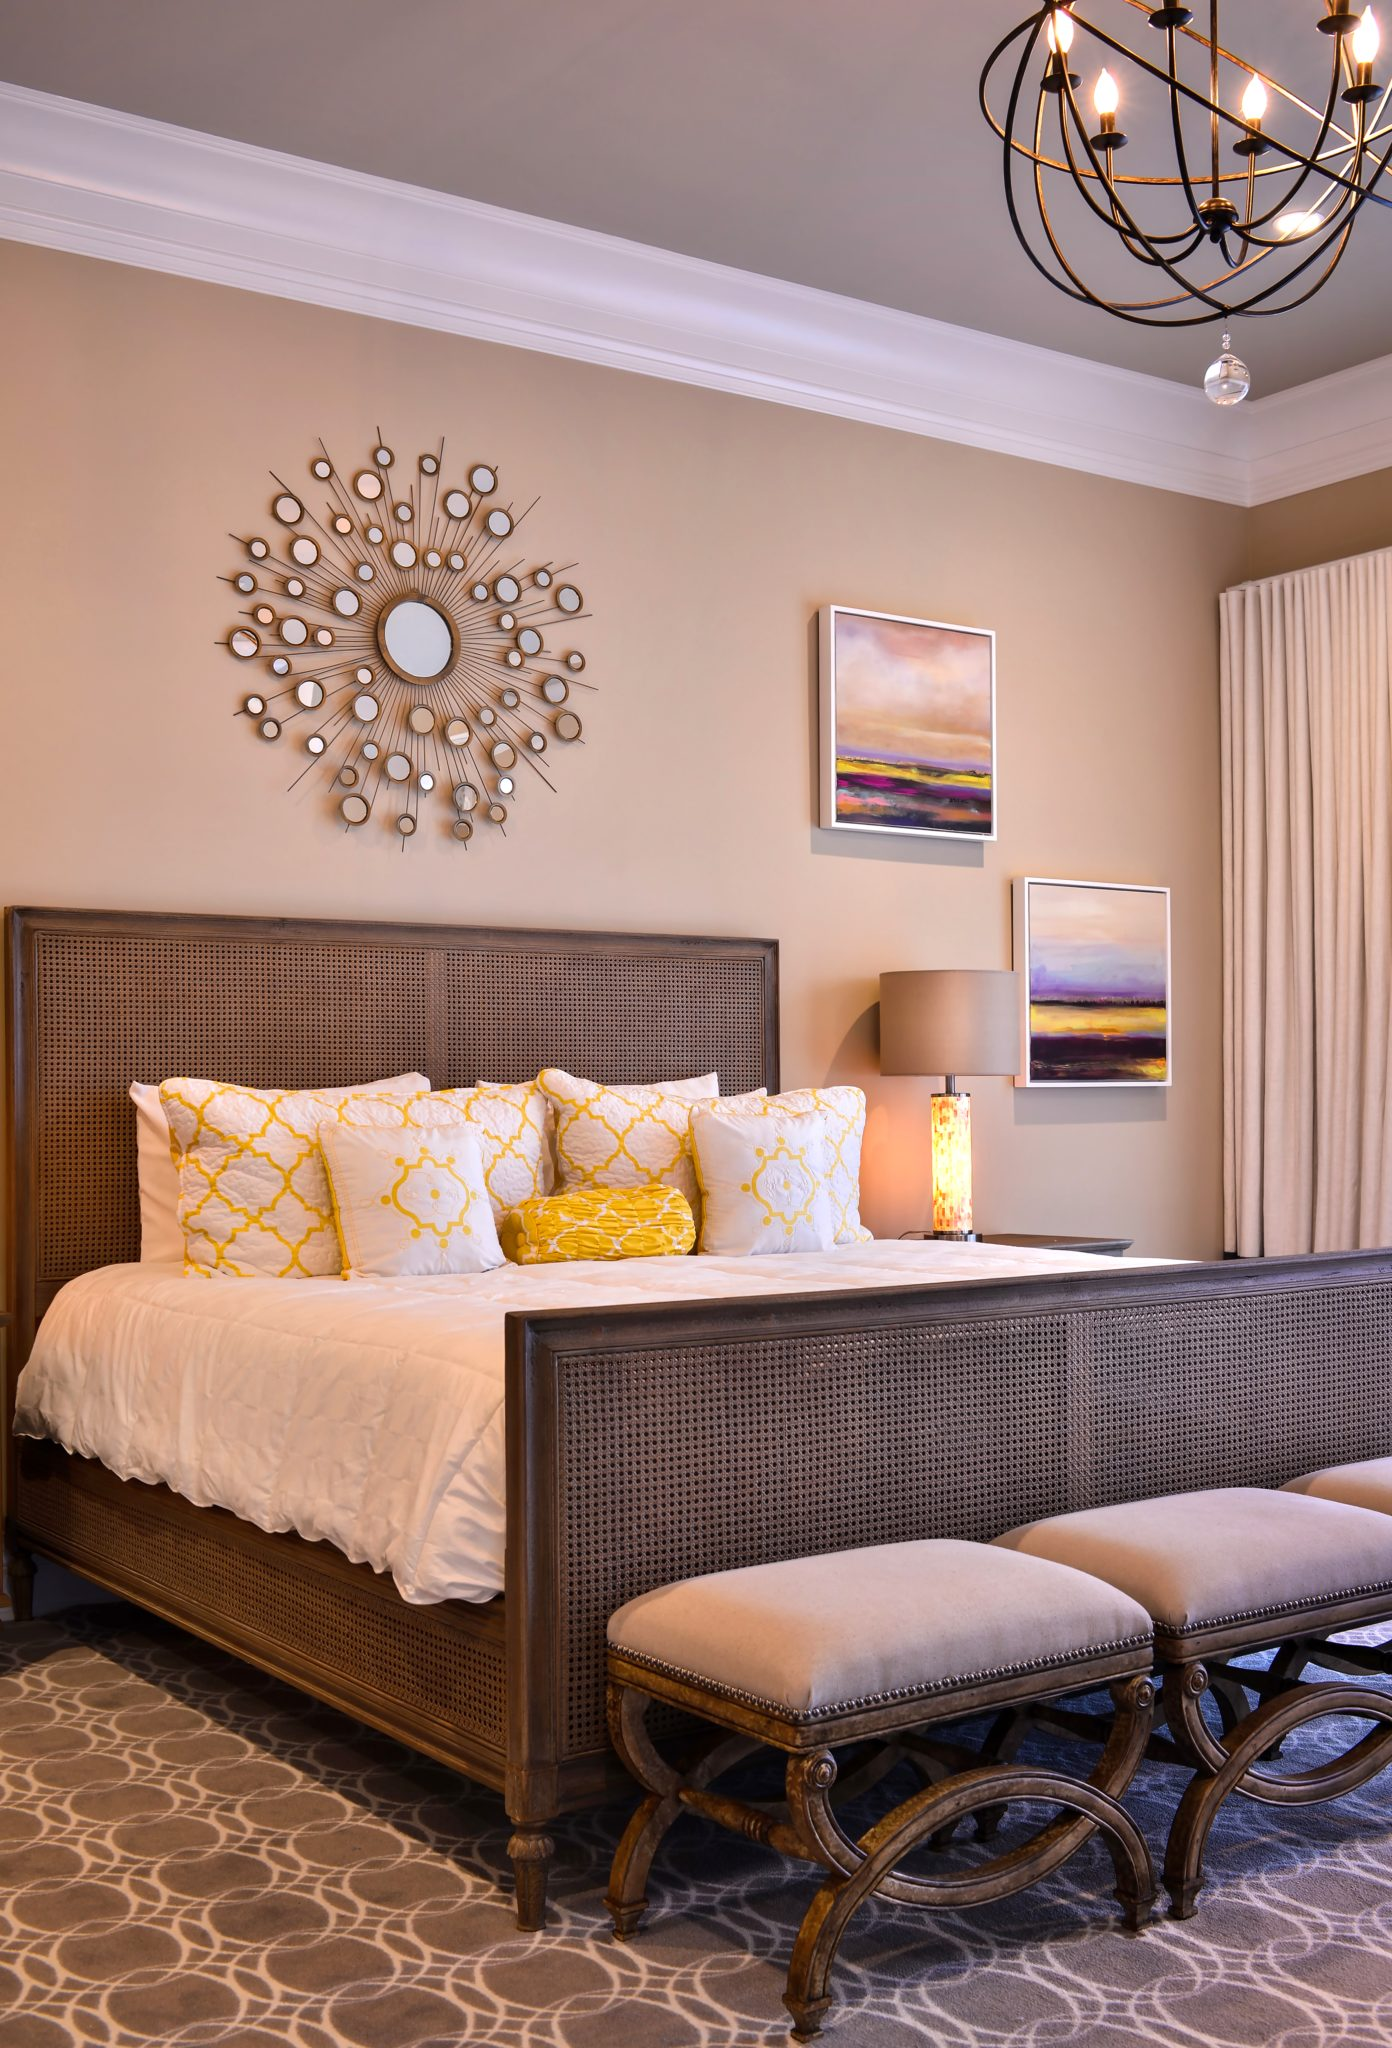 Guest bedroom with large chandelier rug wall art yellow pillows by Keith Mazzei Interiors